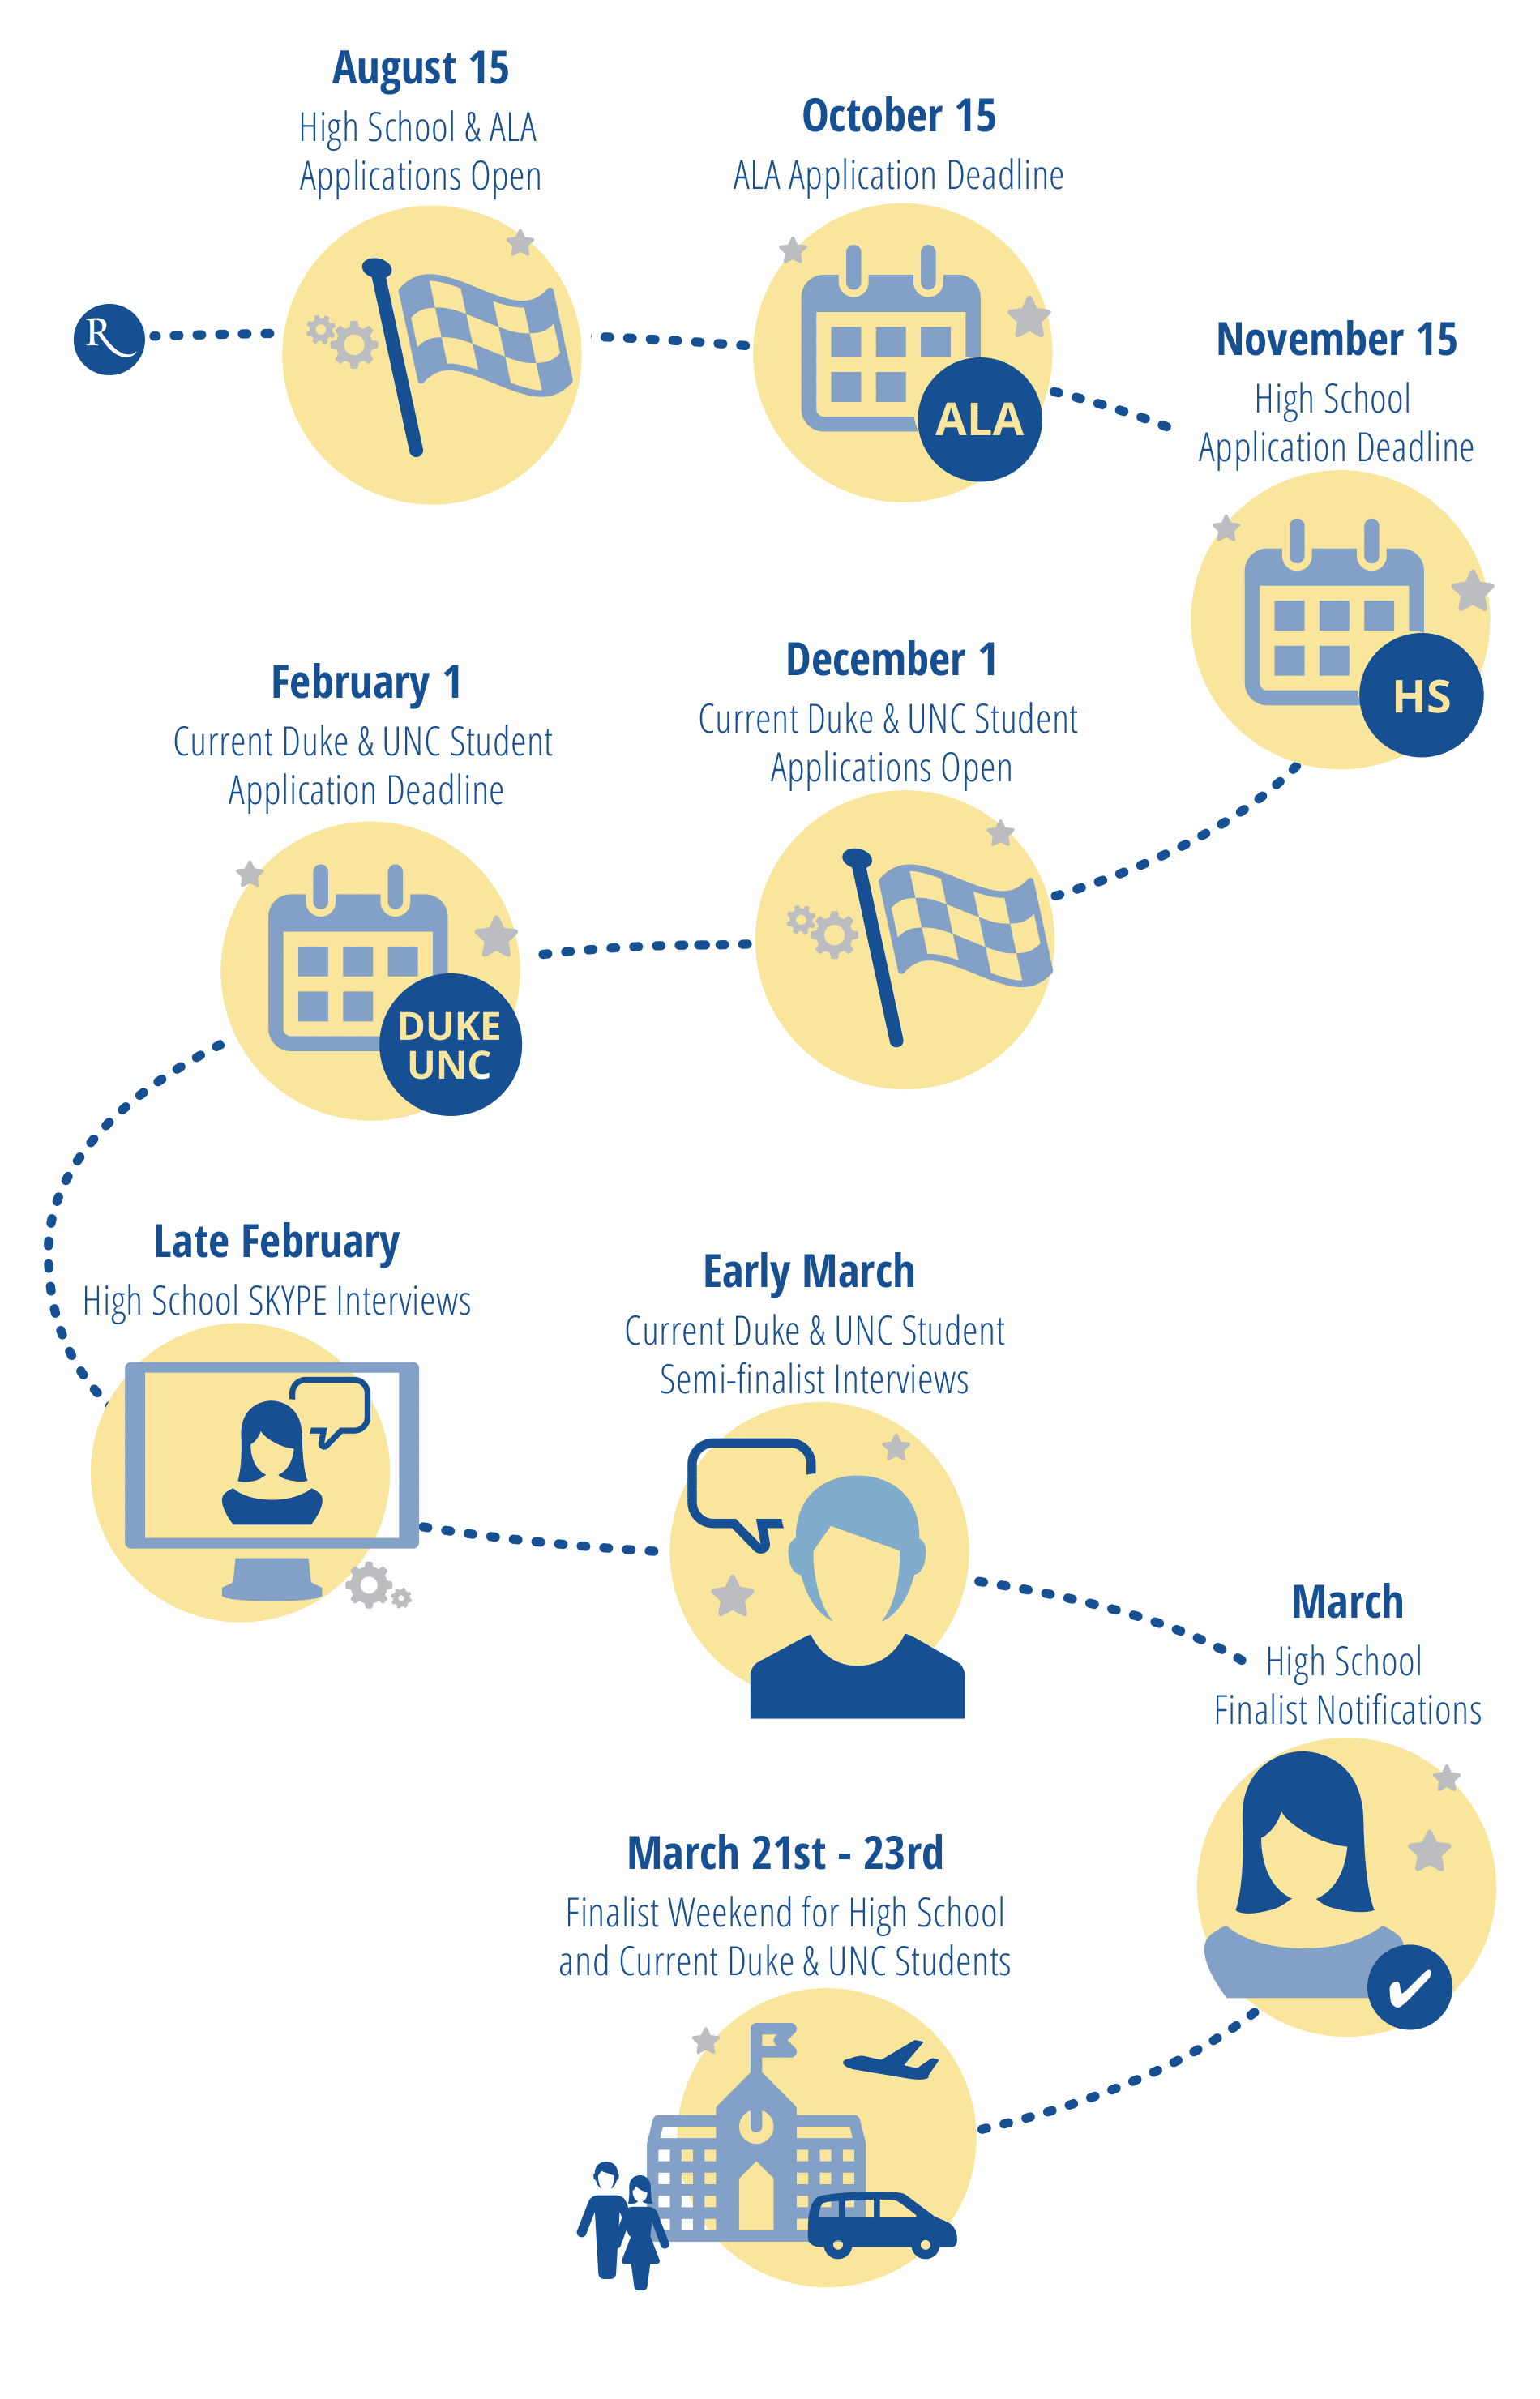 Aggregate Timeline@2x UPDATED